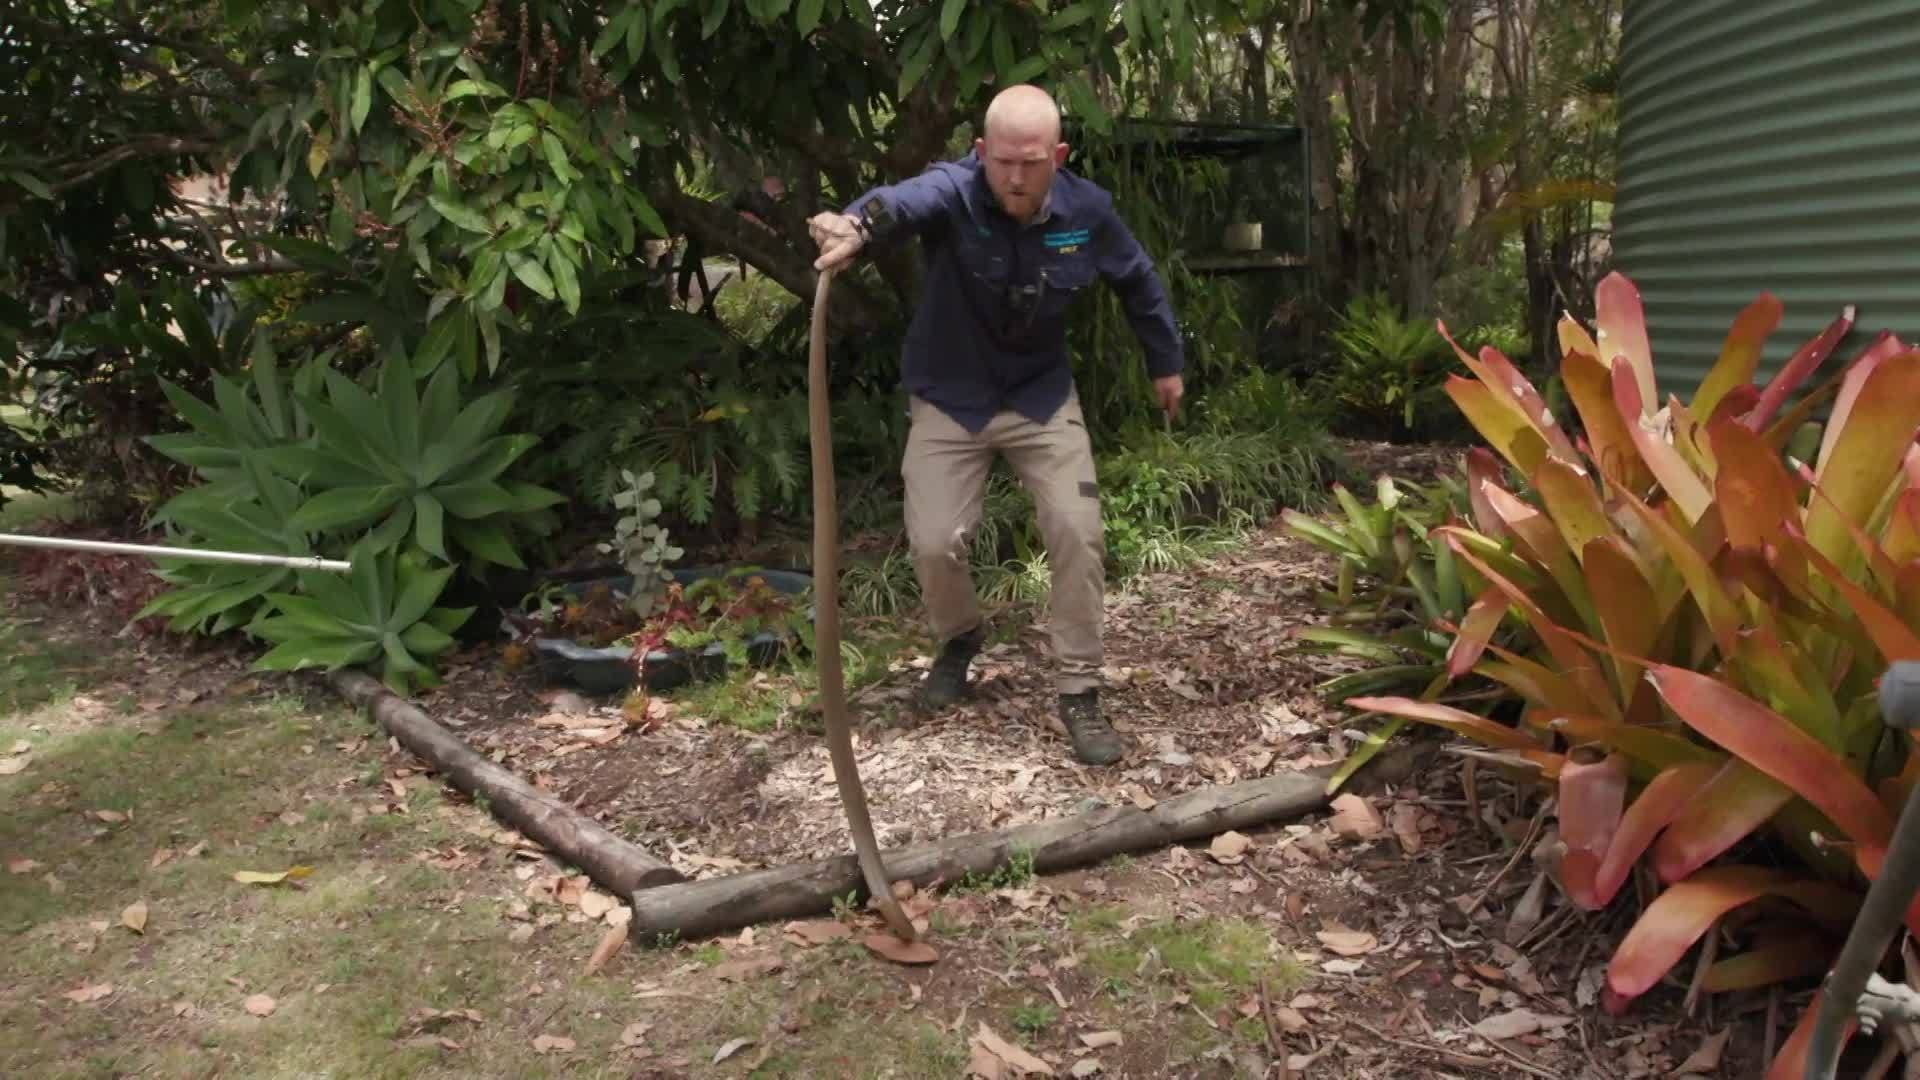 Eastern brown snake chase | Aussie Snake Wranglers | National Geographic Australia & New Zealand